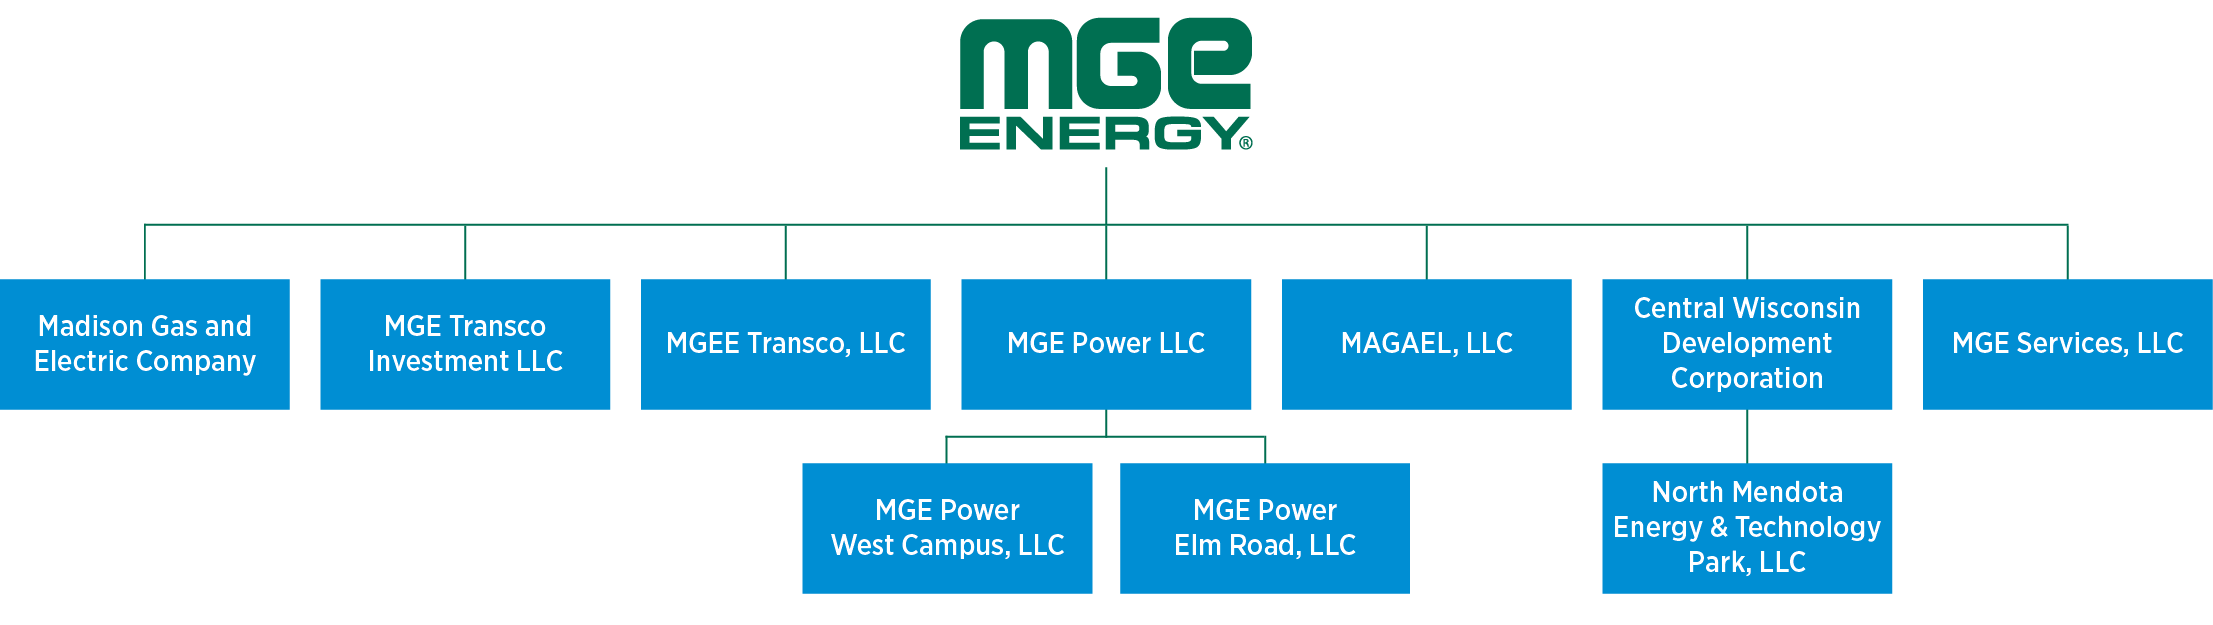 MGE Energy Corporate Profile